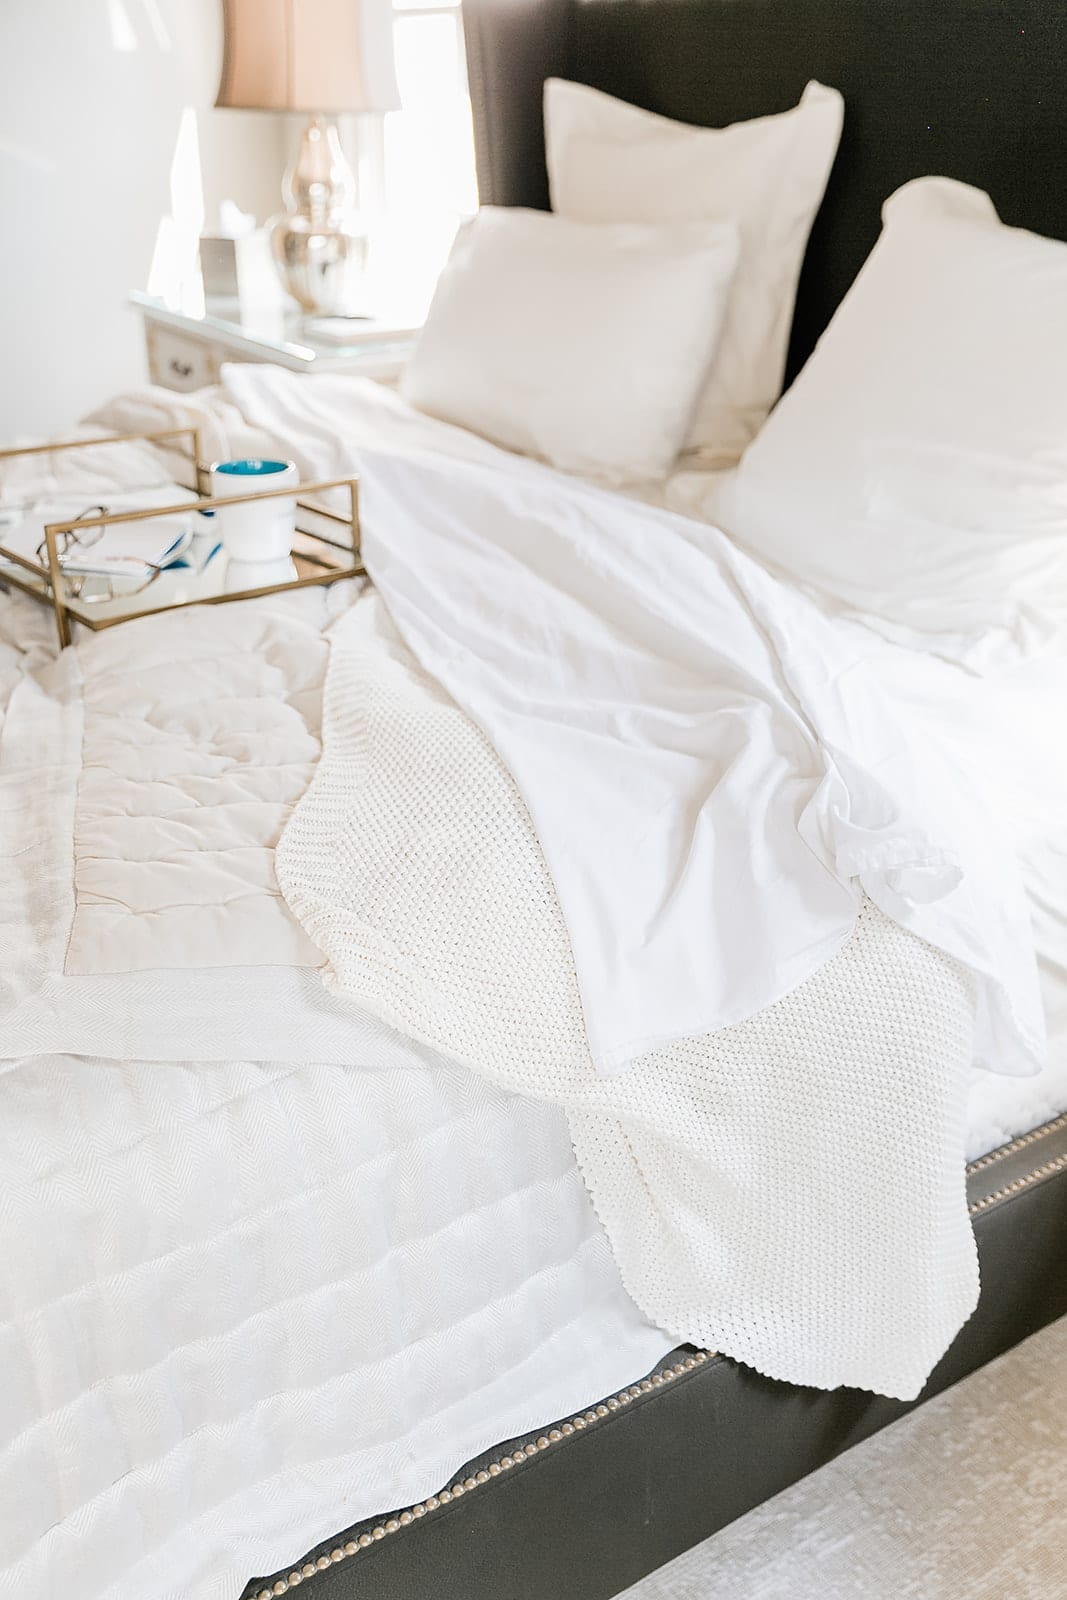 Ivory Hotel Sheets for fall. Dark bedroom with light ivory sheets and ivory knit blanket.